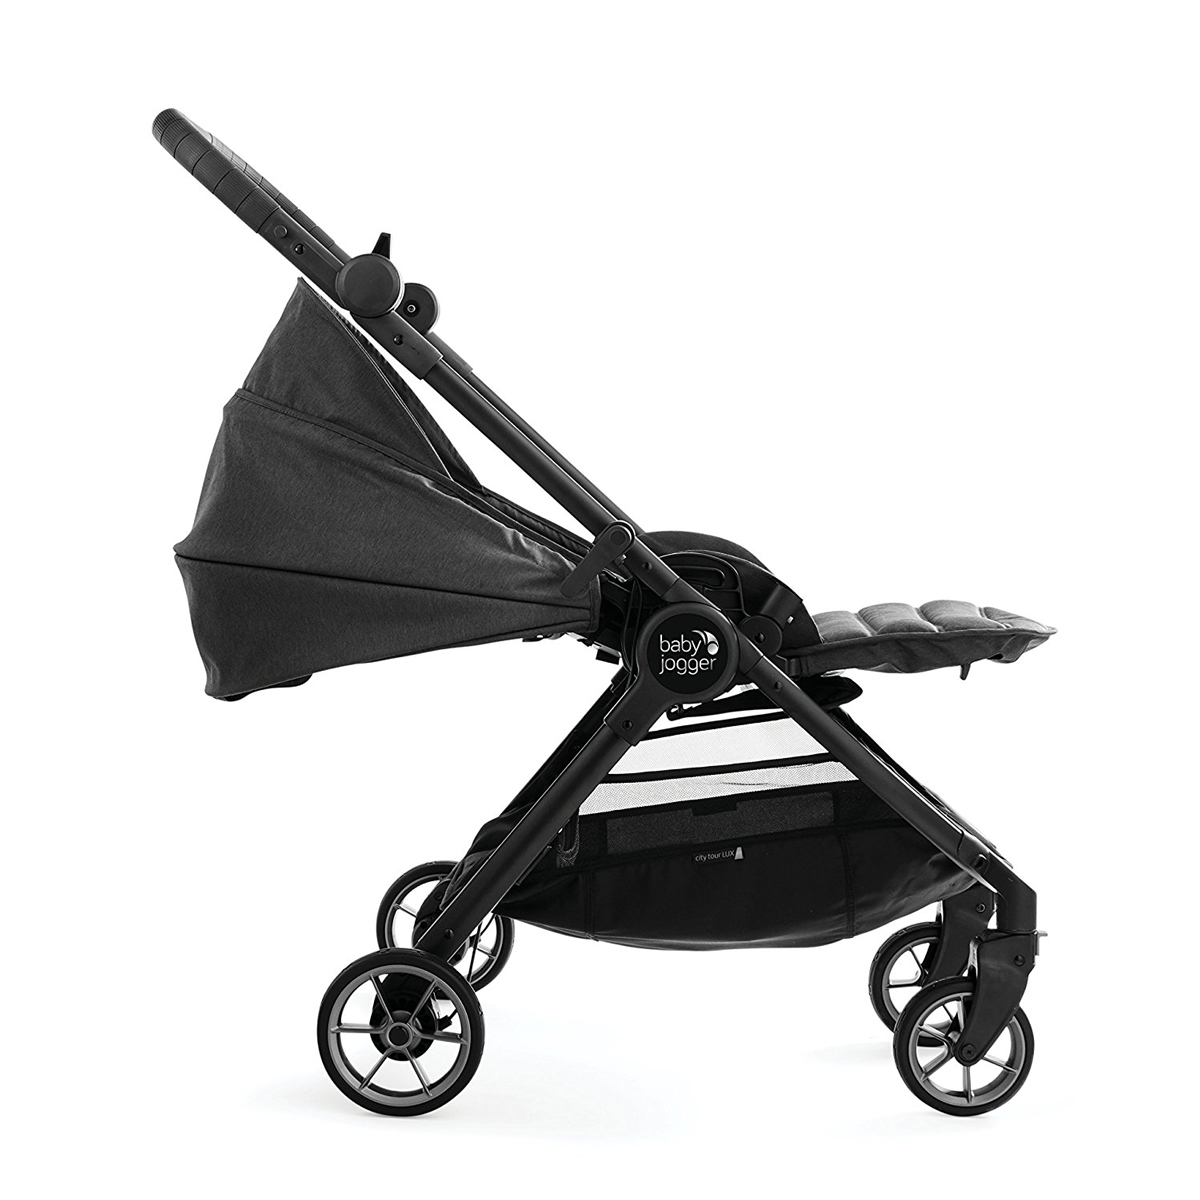 Carucior City Tour Lux Slate sistem 2 in 1